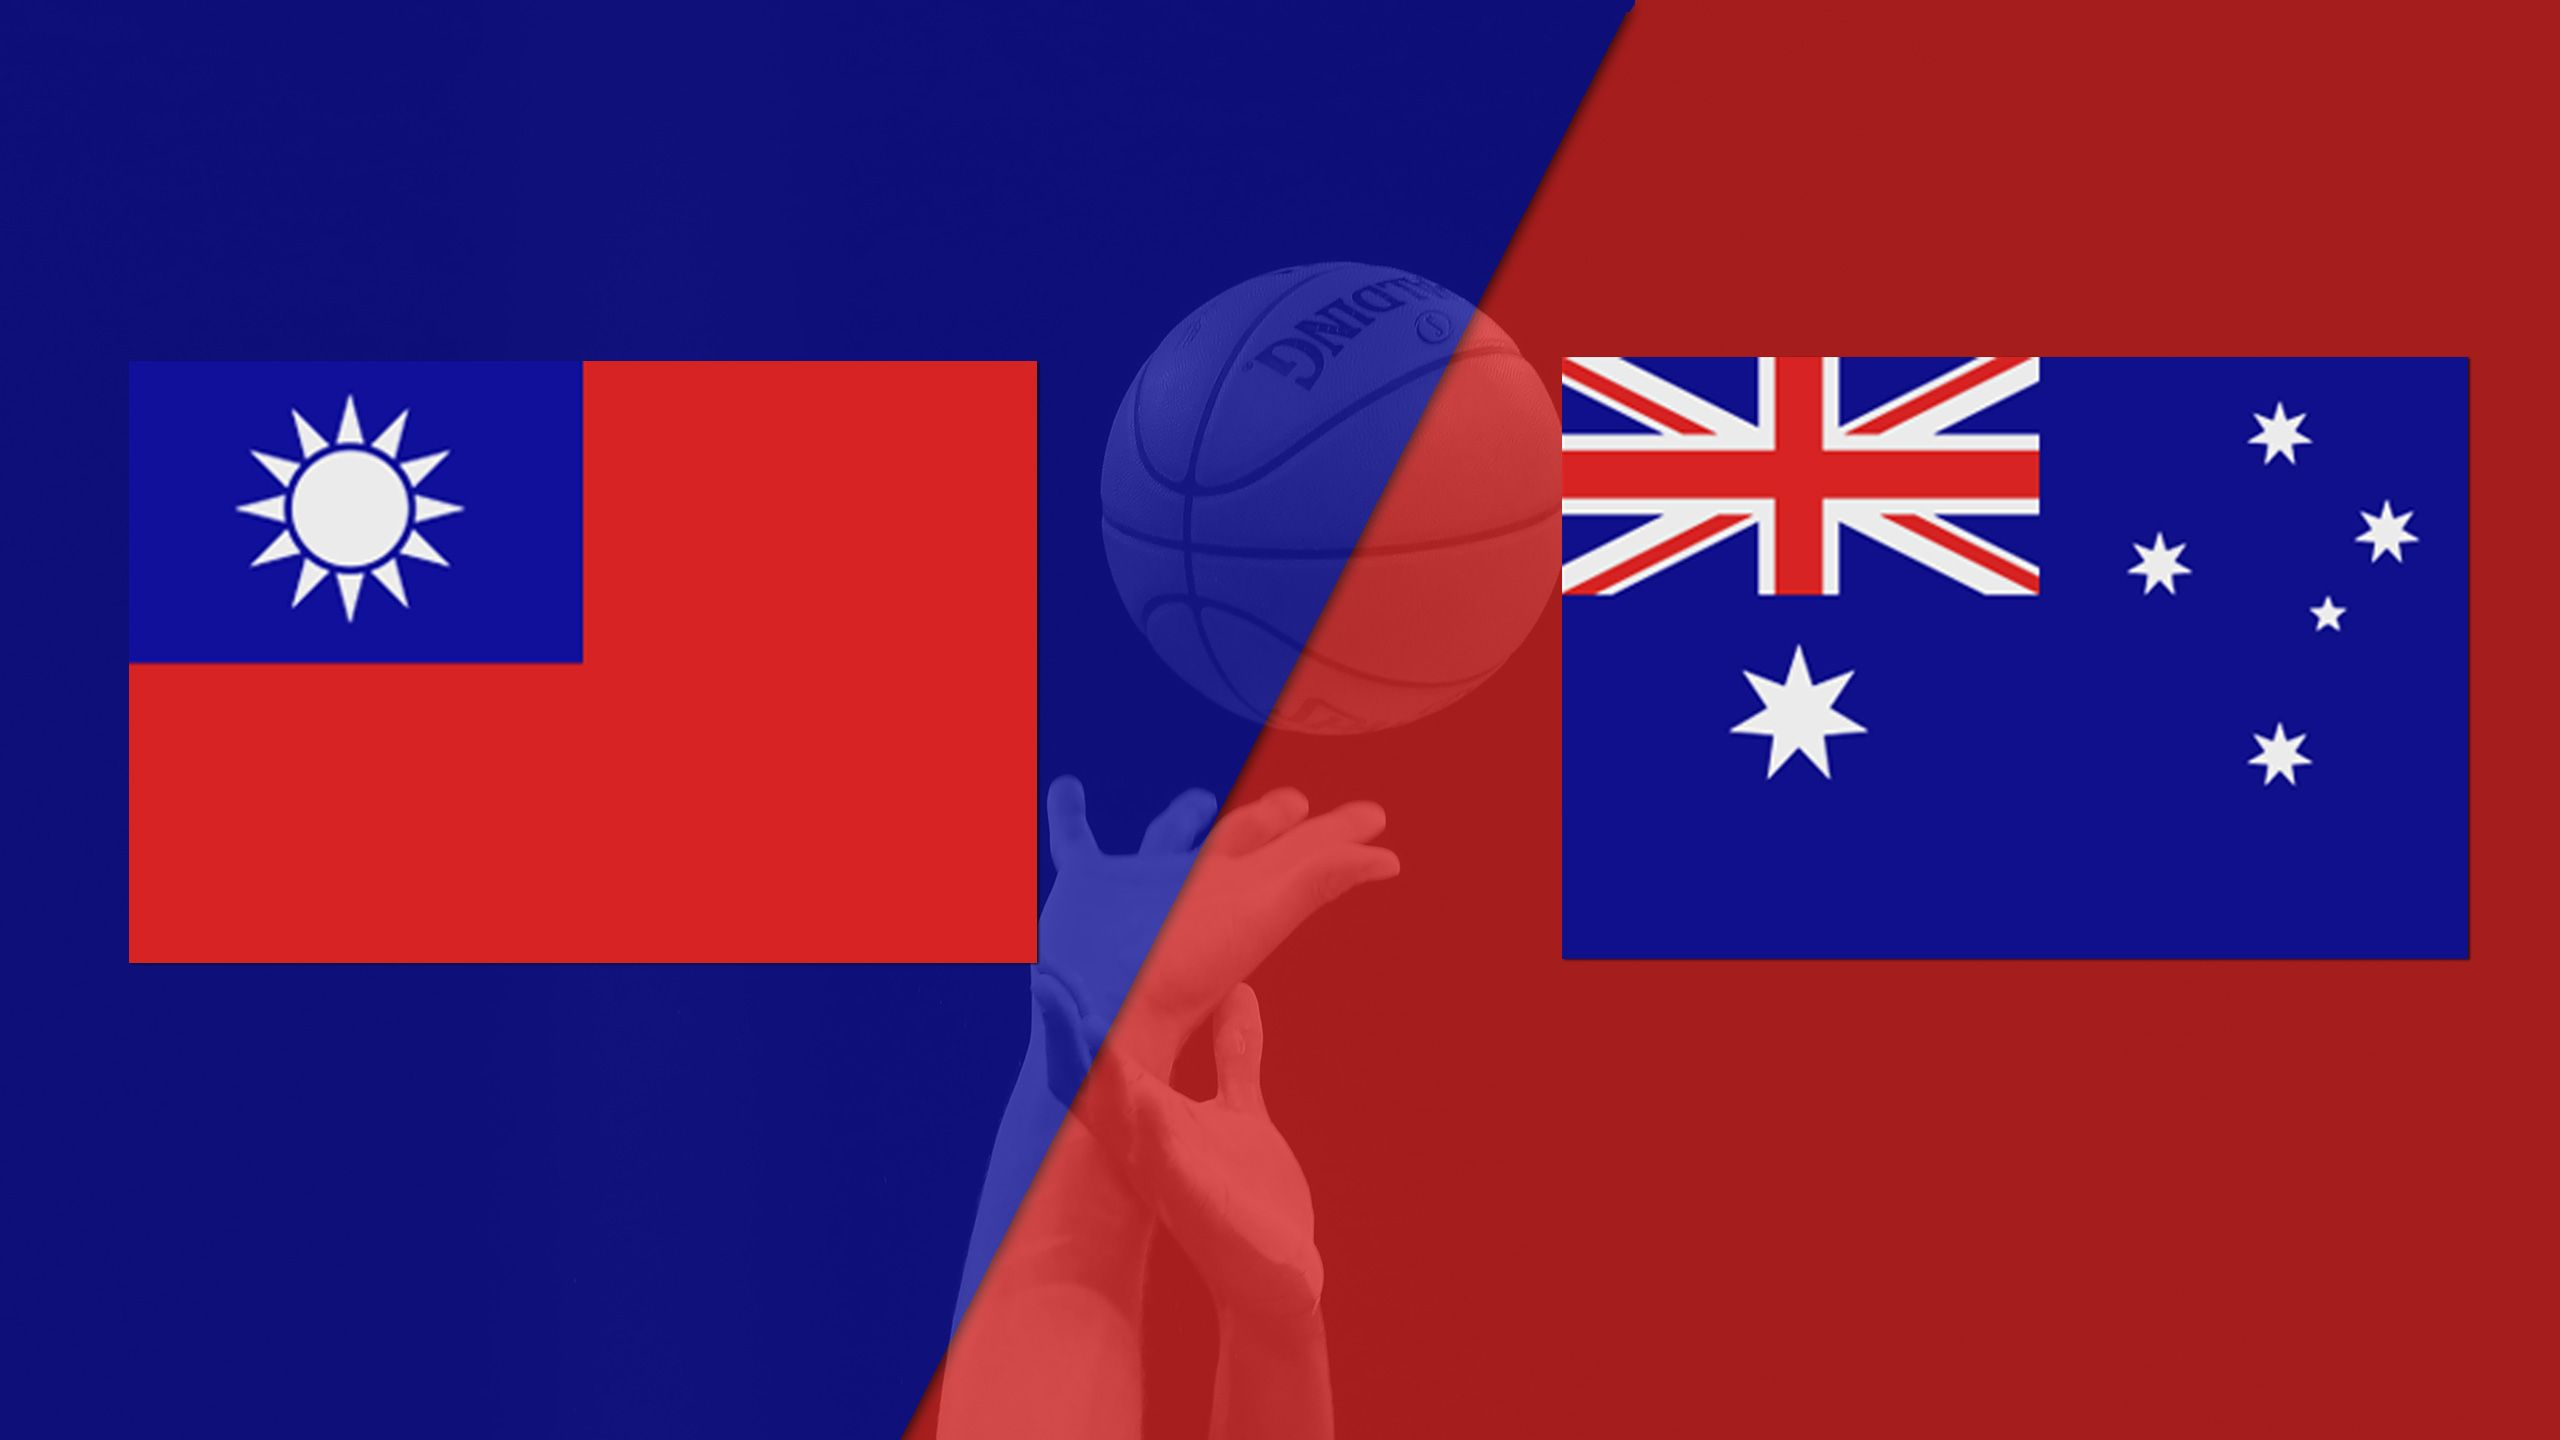 Chinese Taipei vs. Australia (FIBA World Cup 2019 Qualifier)